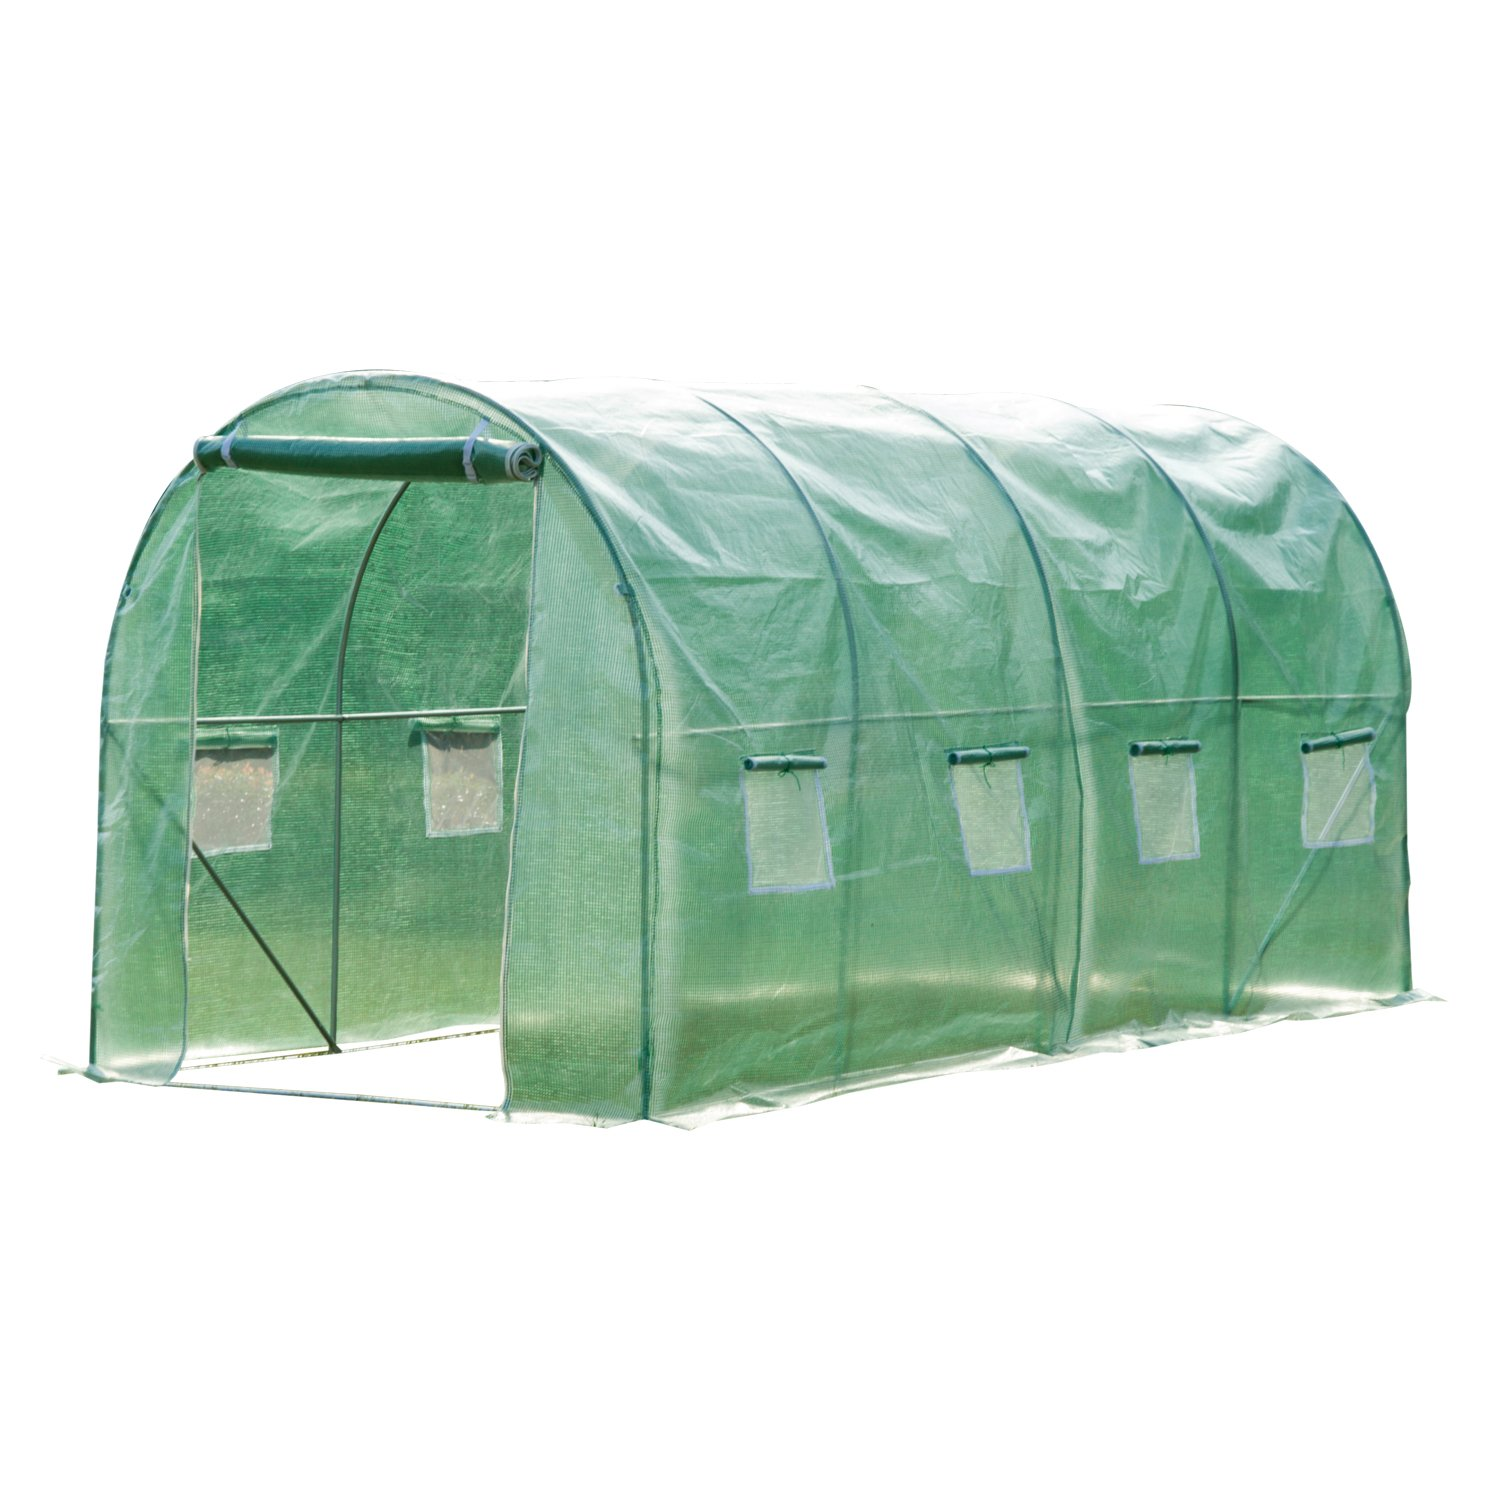 Bouncy Castles Tents Suitable For Marquees 8 x Woodside Galvanised Heavy Duty Steel Ground Stakes // Anchorage Stakes // Tent Pegs Trampolines Polytunnel Greenhouses Gazebos